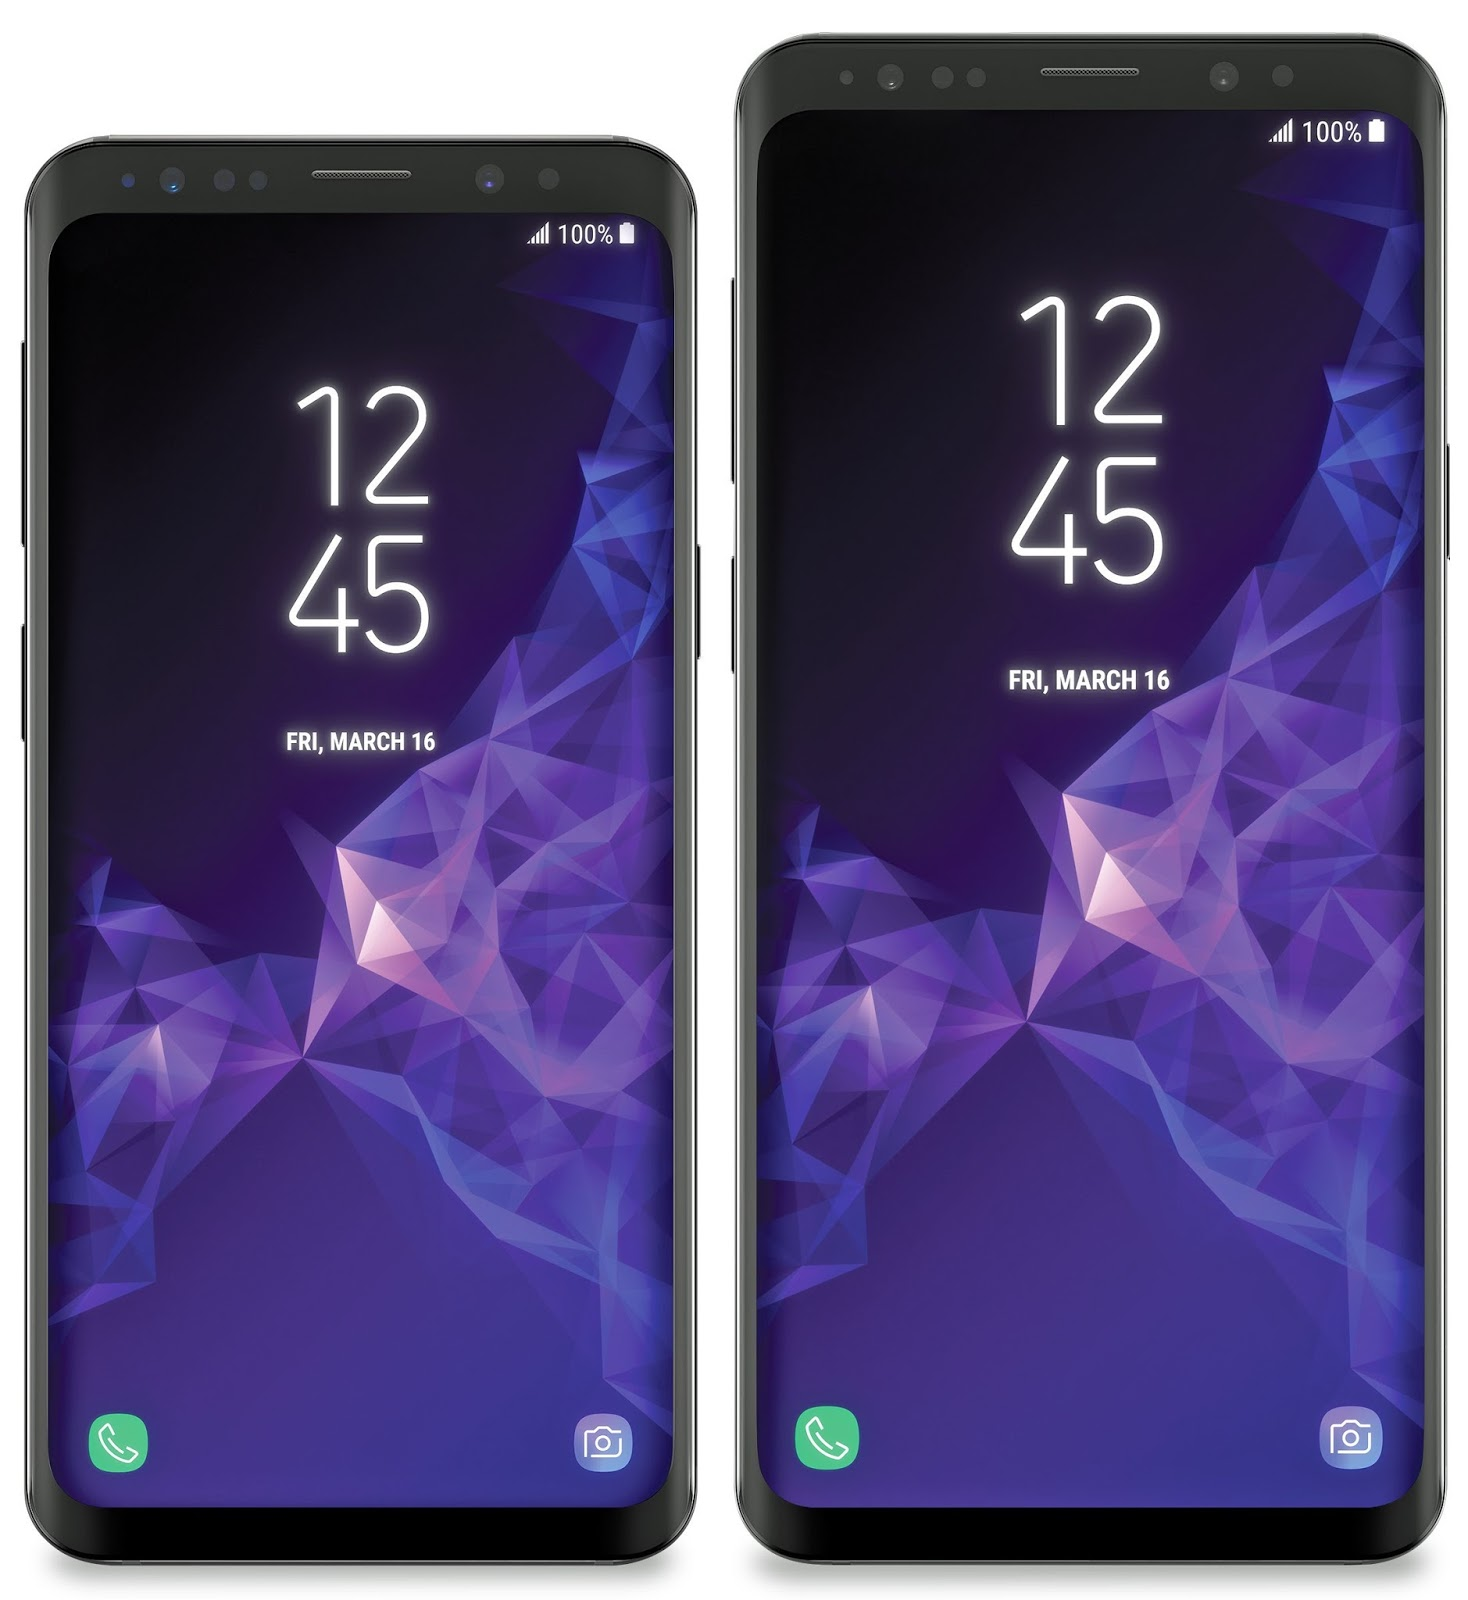 Samsung Galaxy S9 and S9 Plus Official Wallpaper